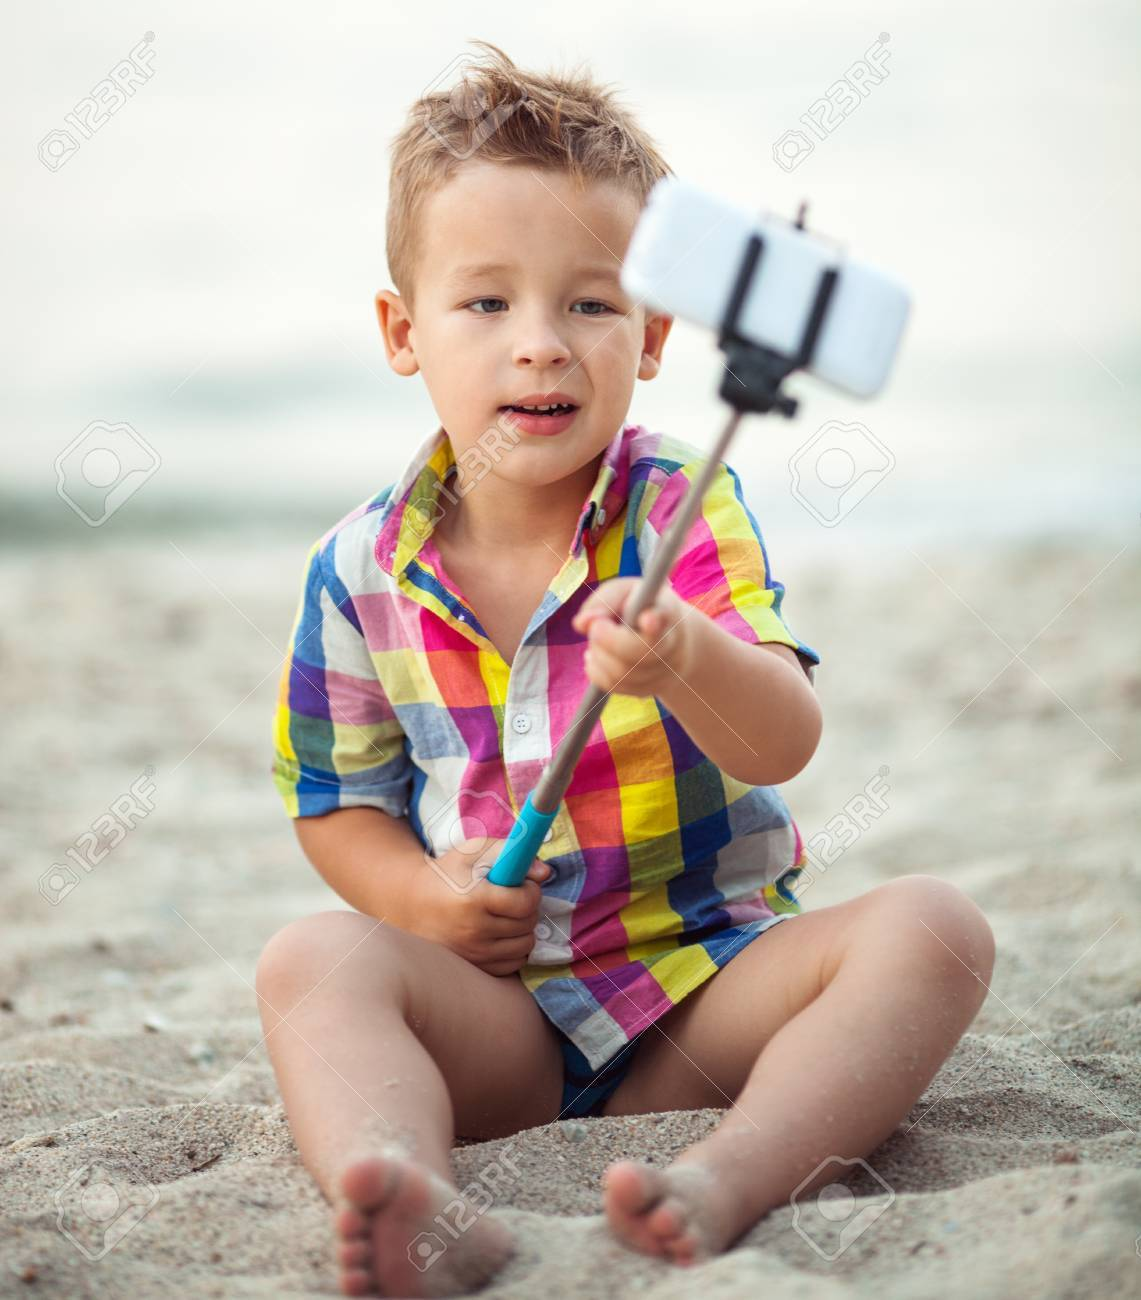 f7c85a3e1 Cute little boy in colorful checkered shirt sitting on the sand and taking  picture with smart